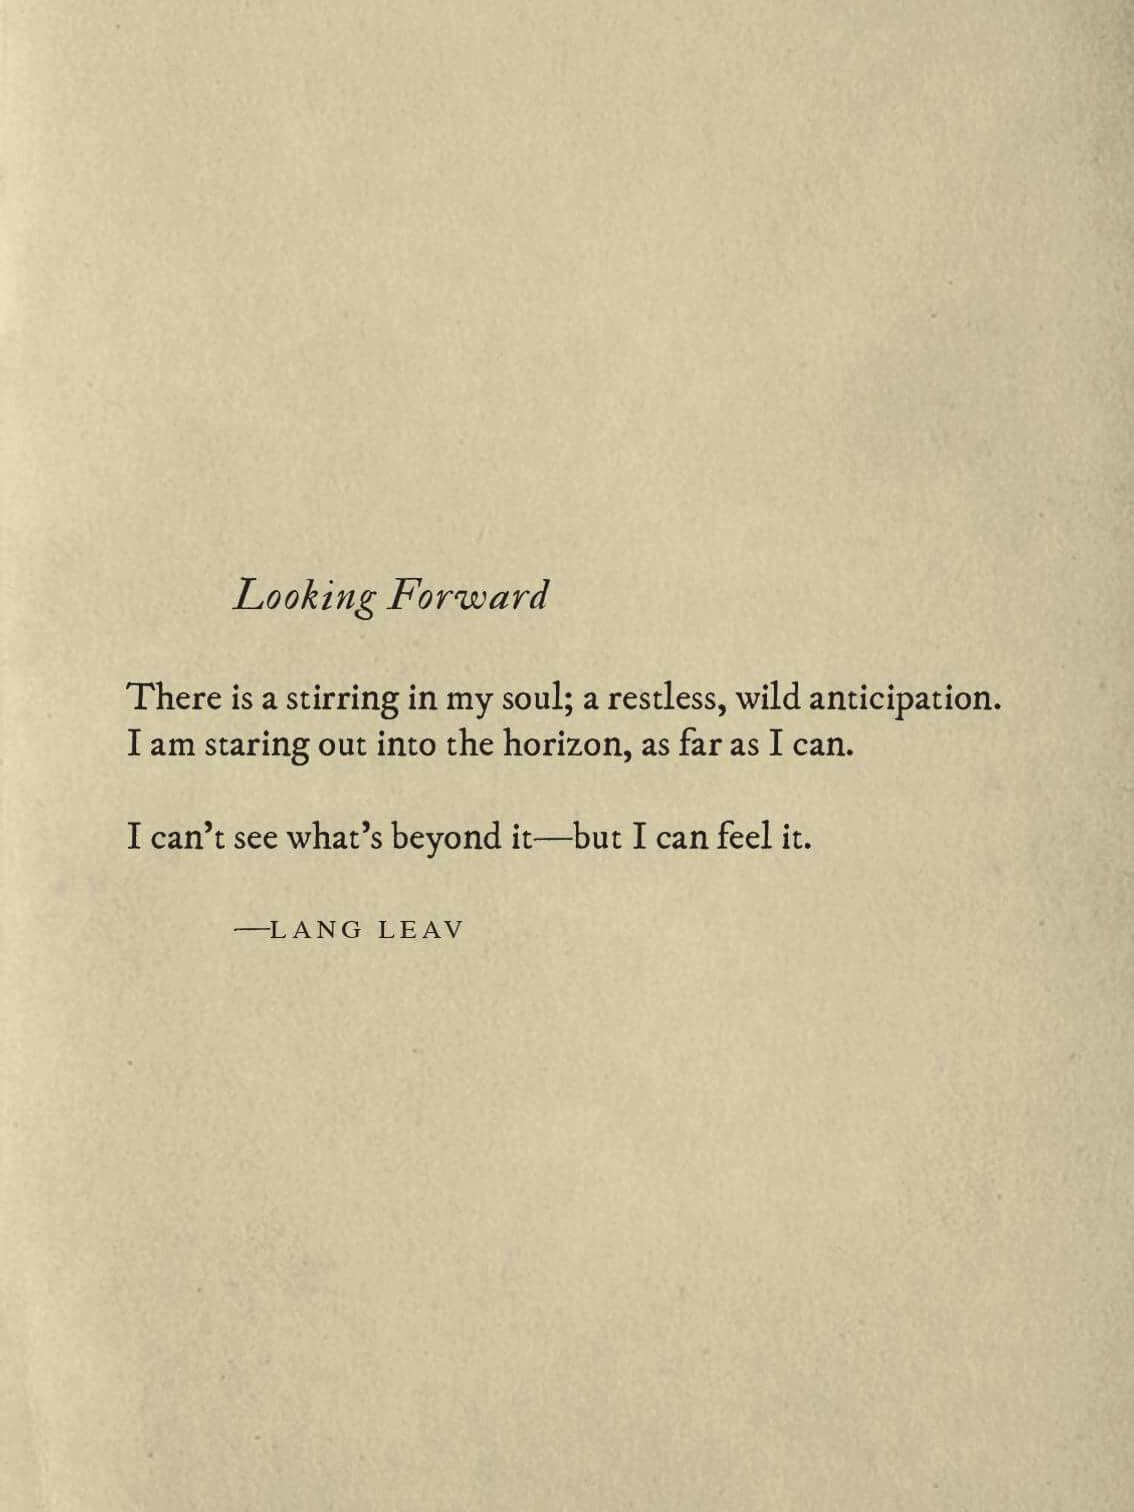 Looking Forward Langleav Looking Forward Quotes Second Love Quotes Look Ahead Quotes